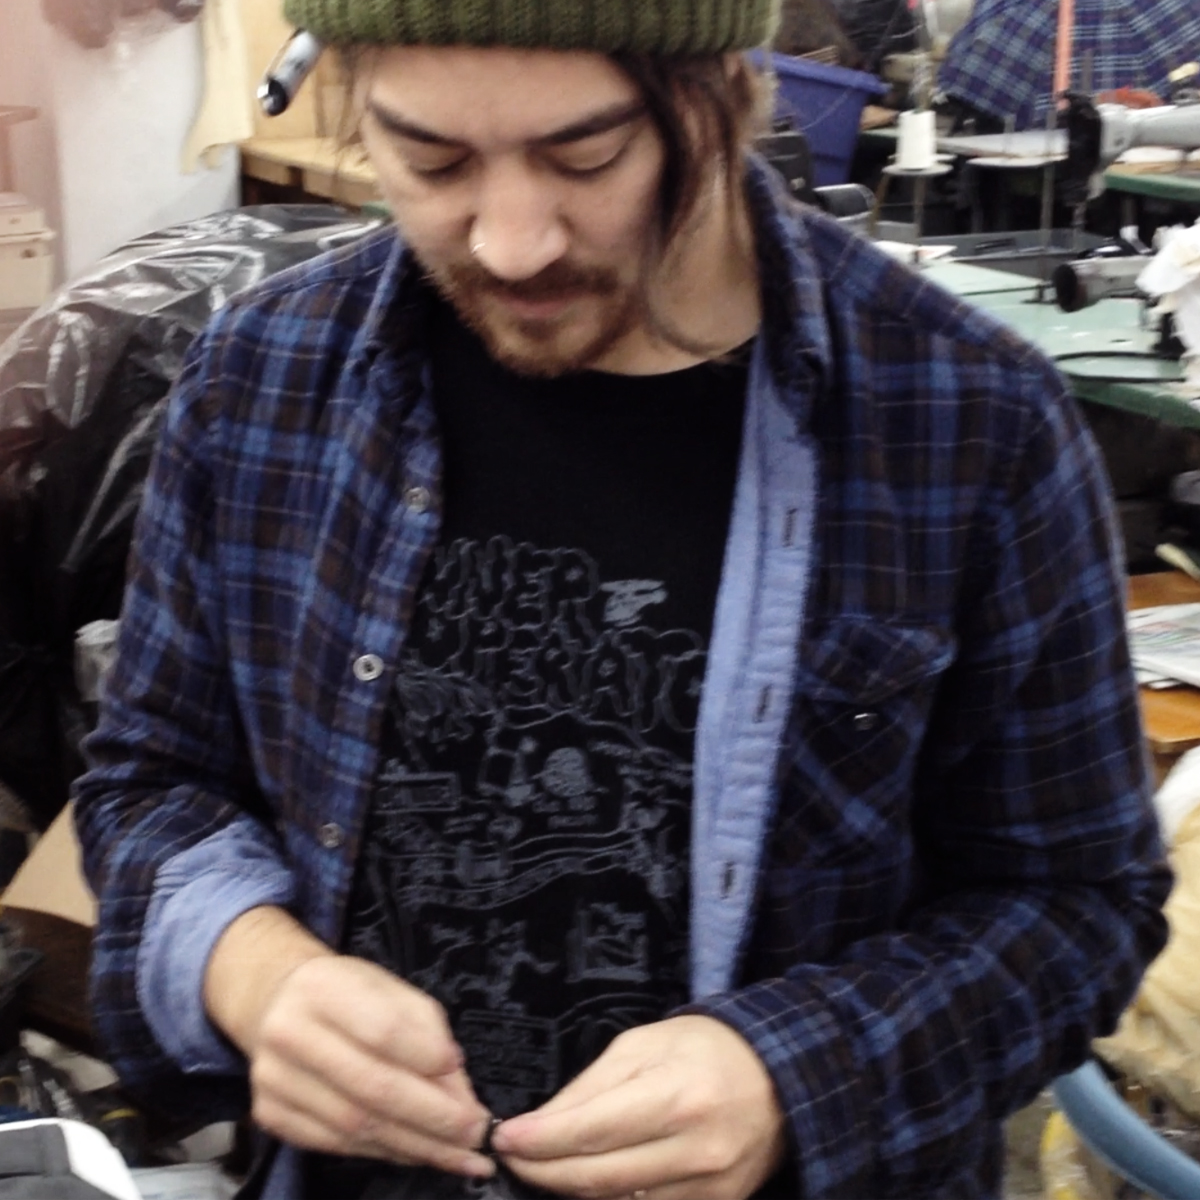 Steven knotting zipper pulls in the factory, NYC 2011